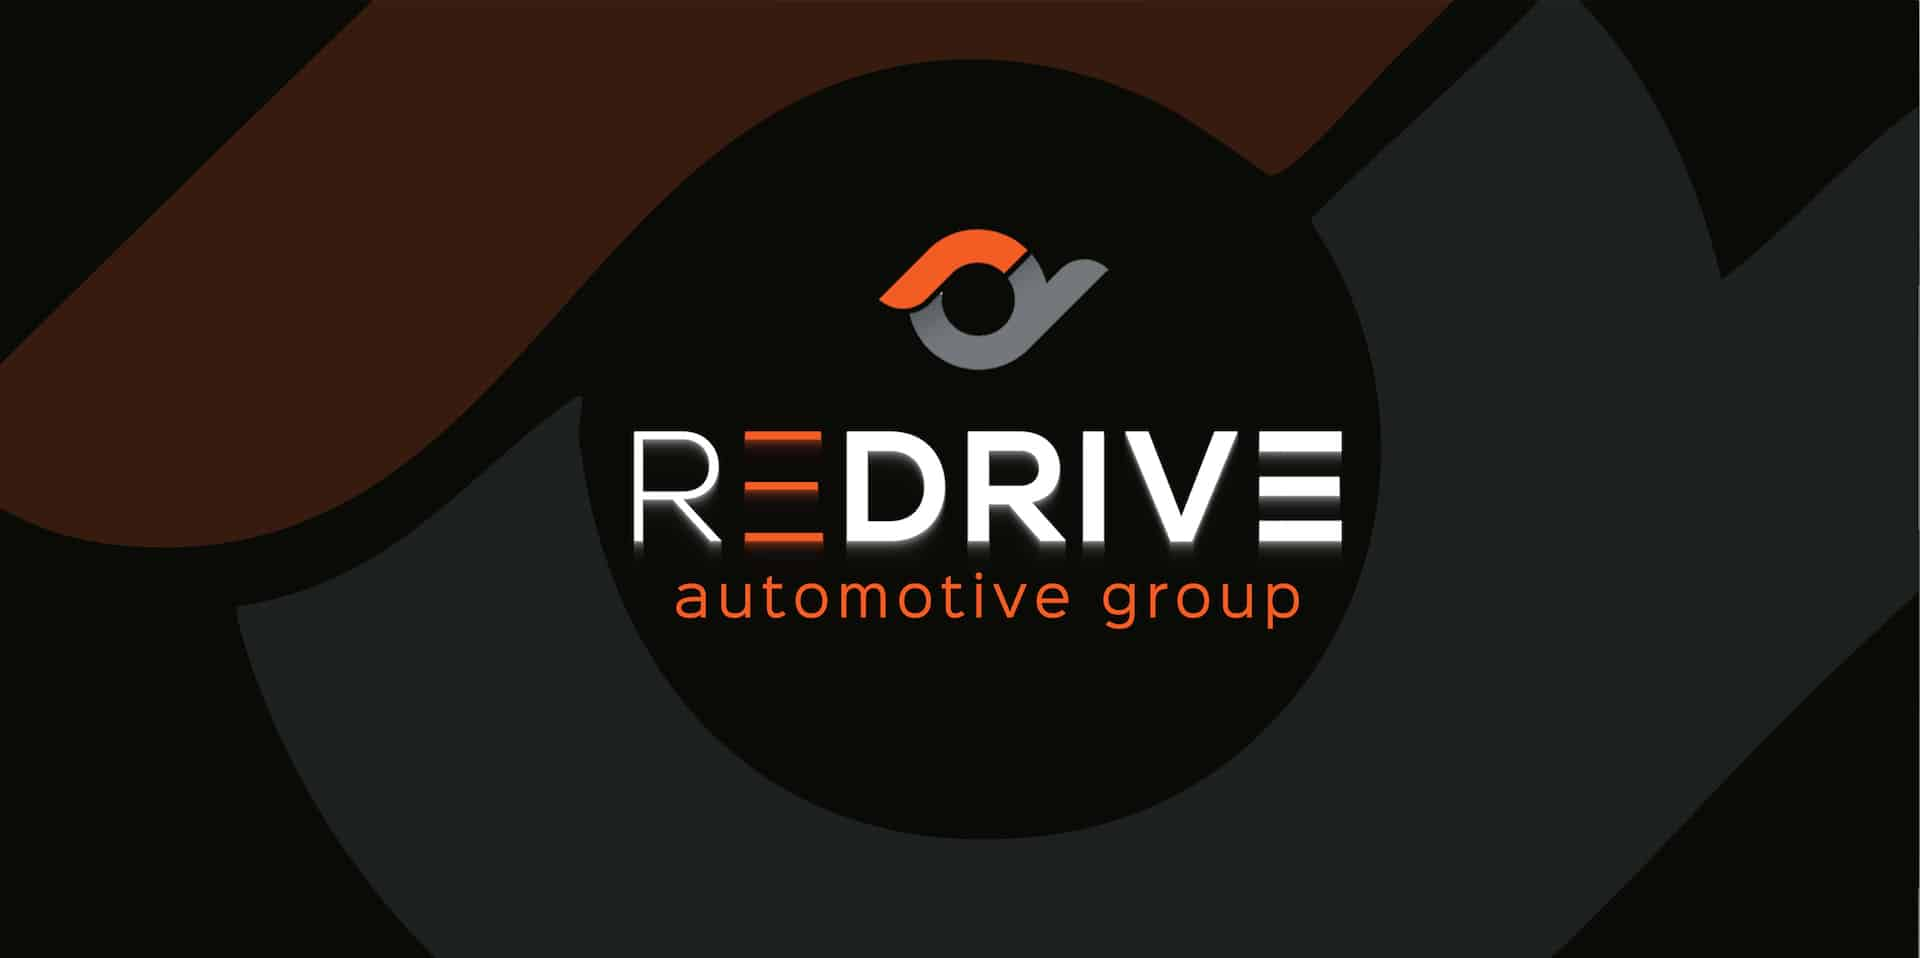 REDrive Automotive